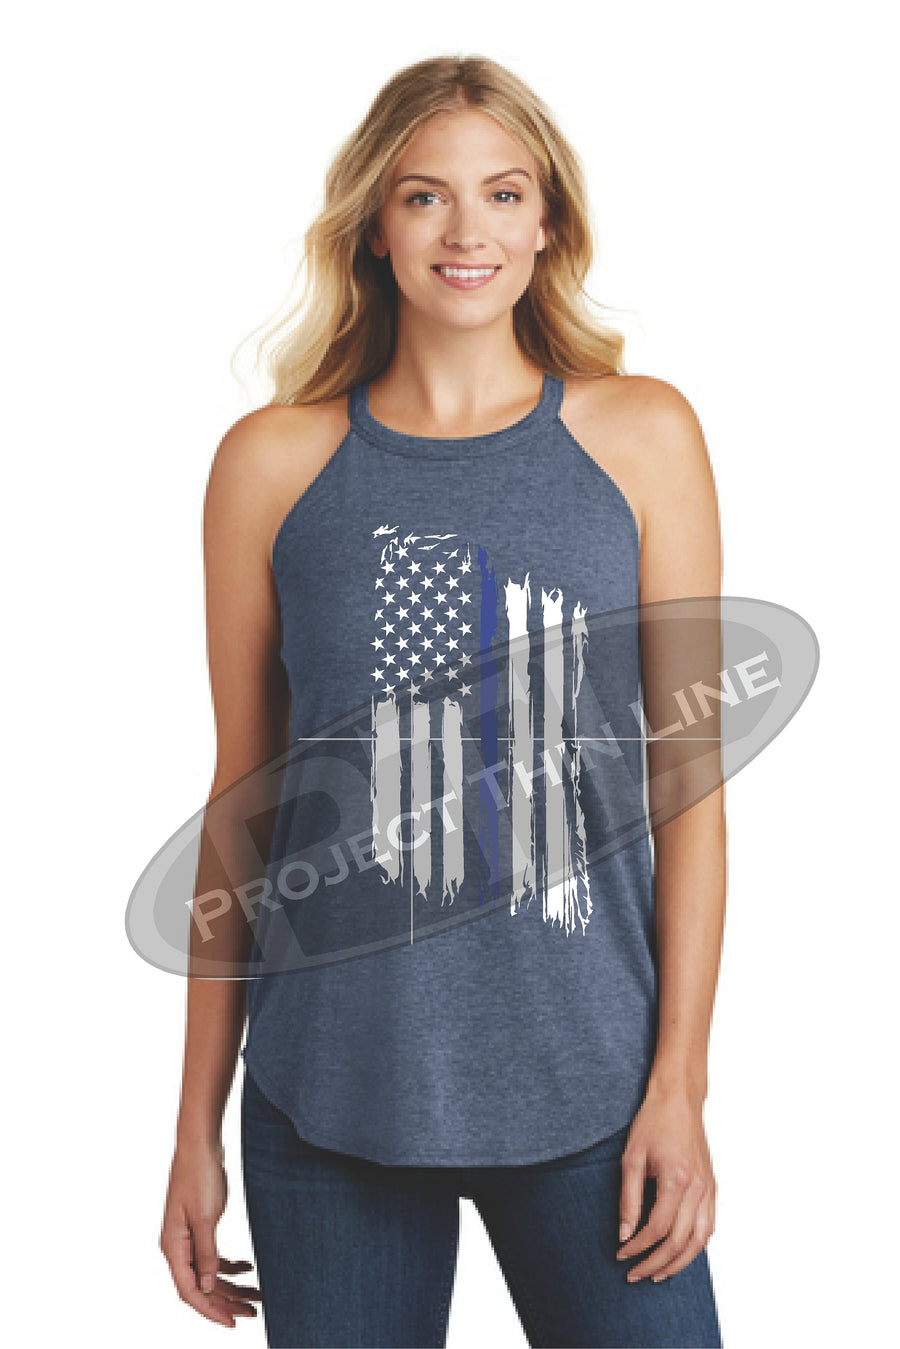 Black Tattered Thin Blue Line American Flag Rocker Tank Top - FRONT